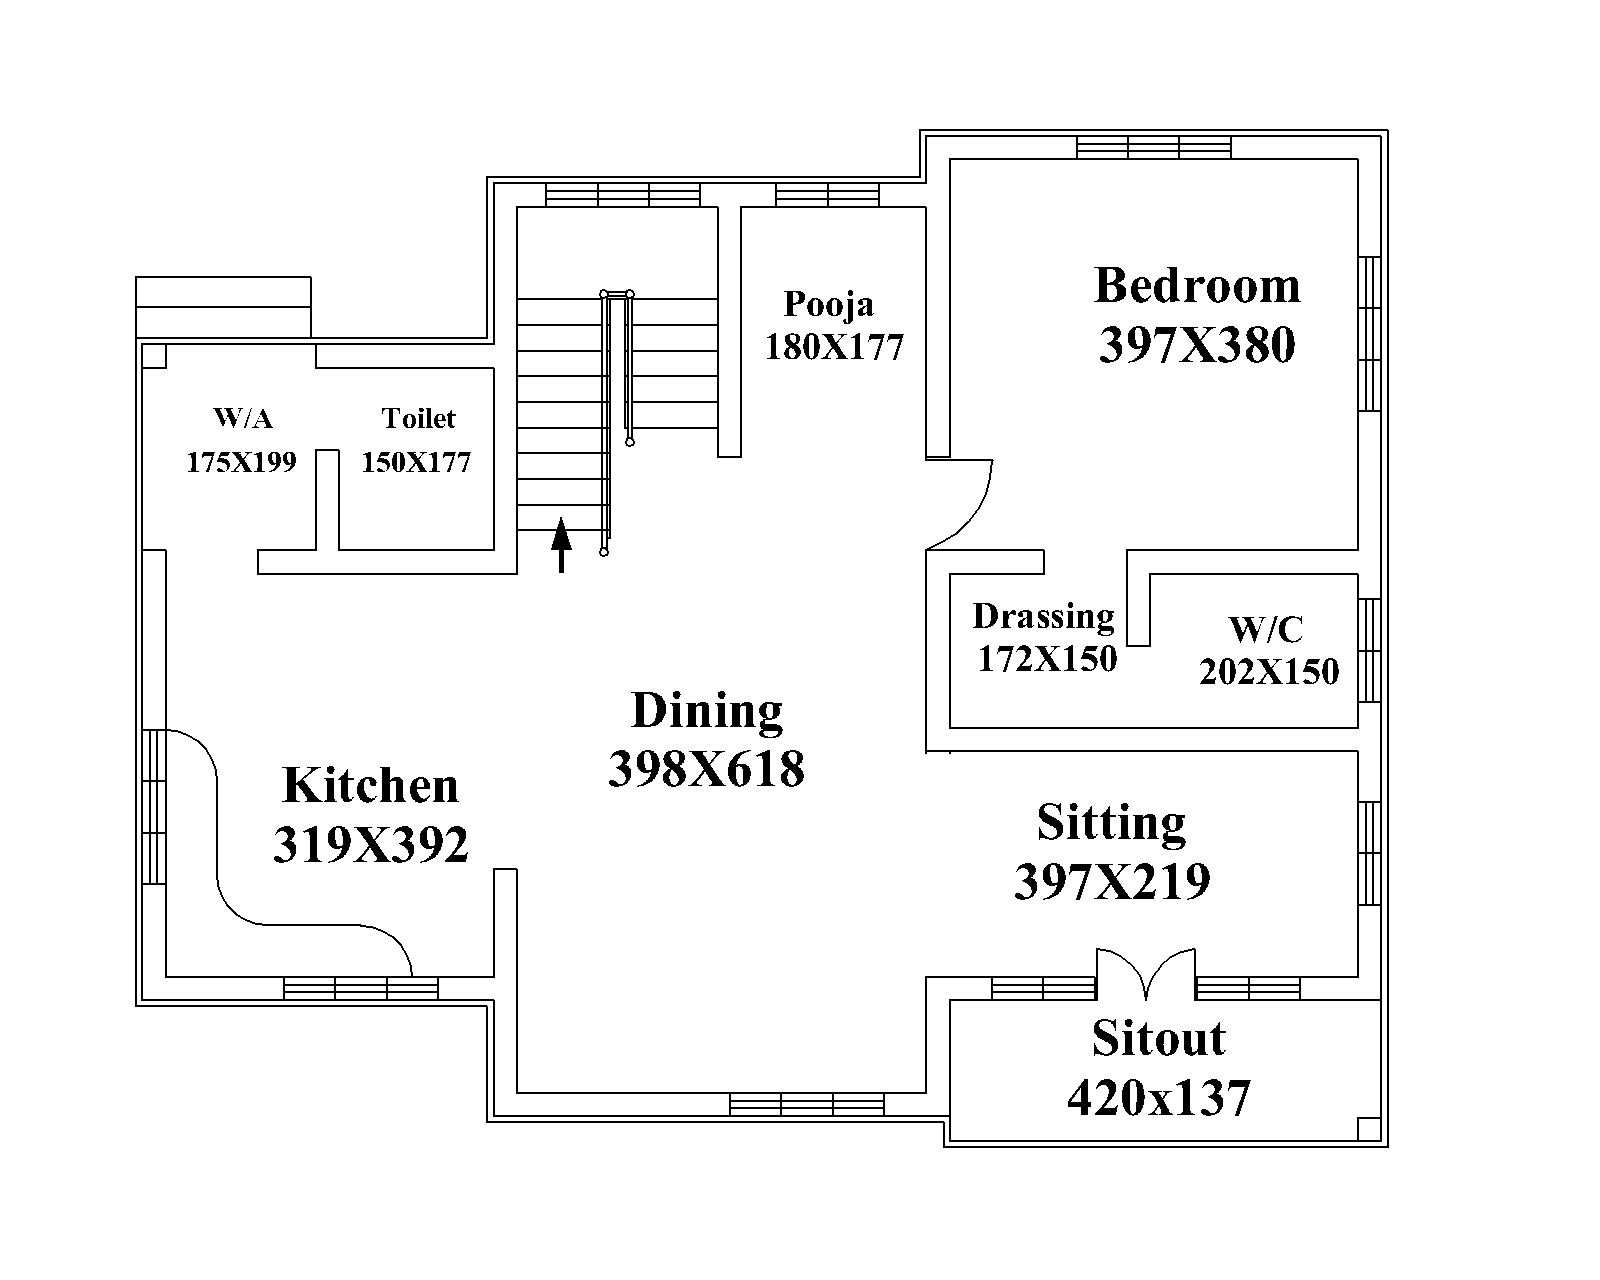 4 bedroom kerala house plans bedroom furniture high for 2 bedroom house floor plans free